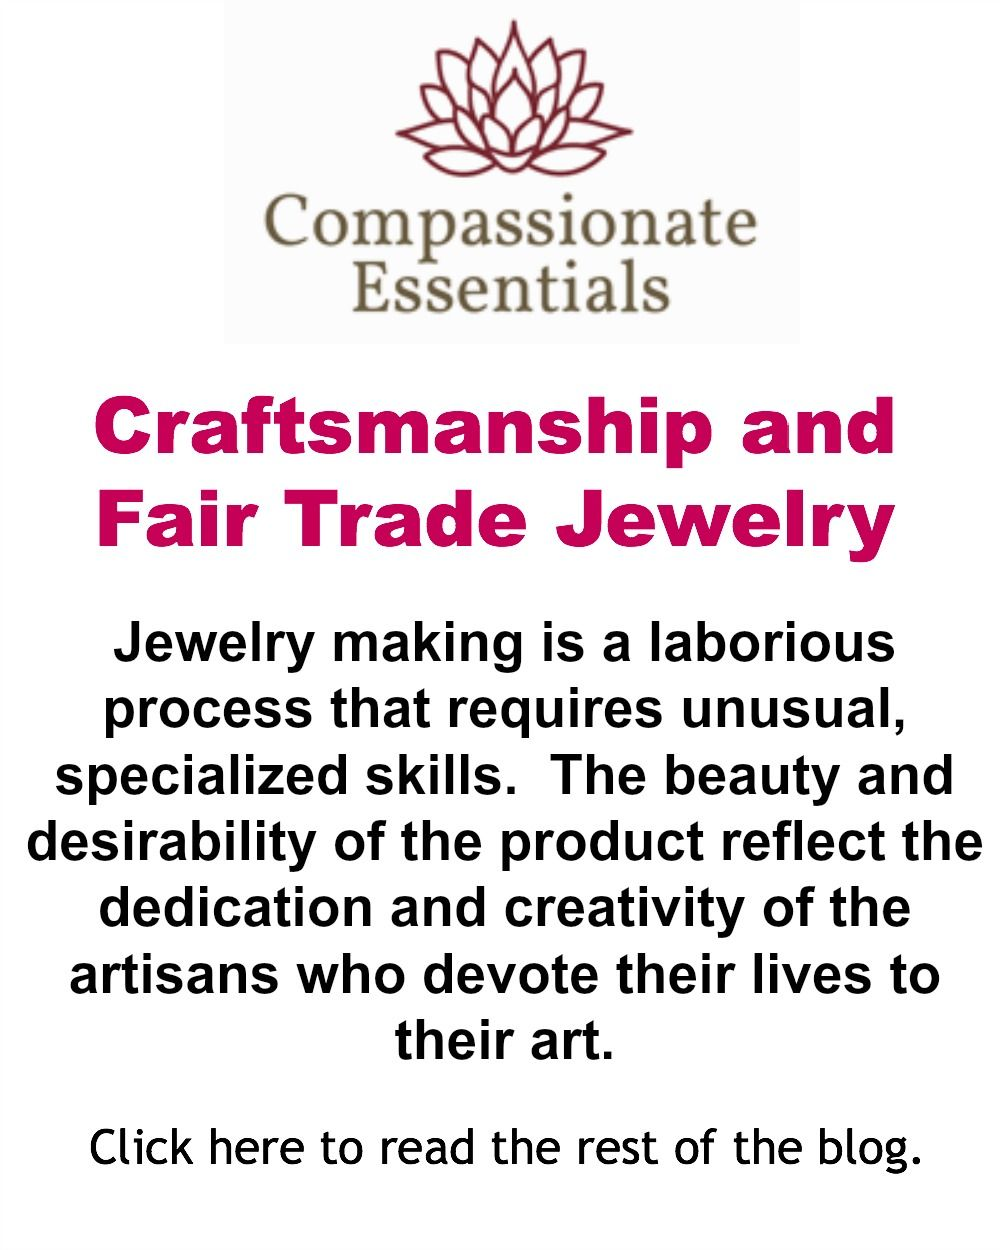 Craftsmanship and Fair Trade Jewelry.